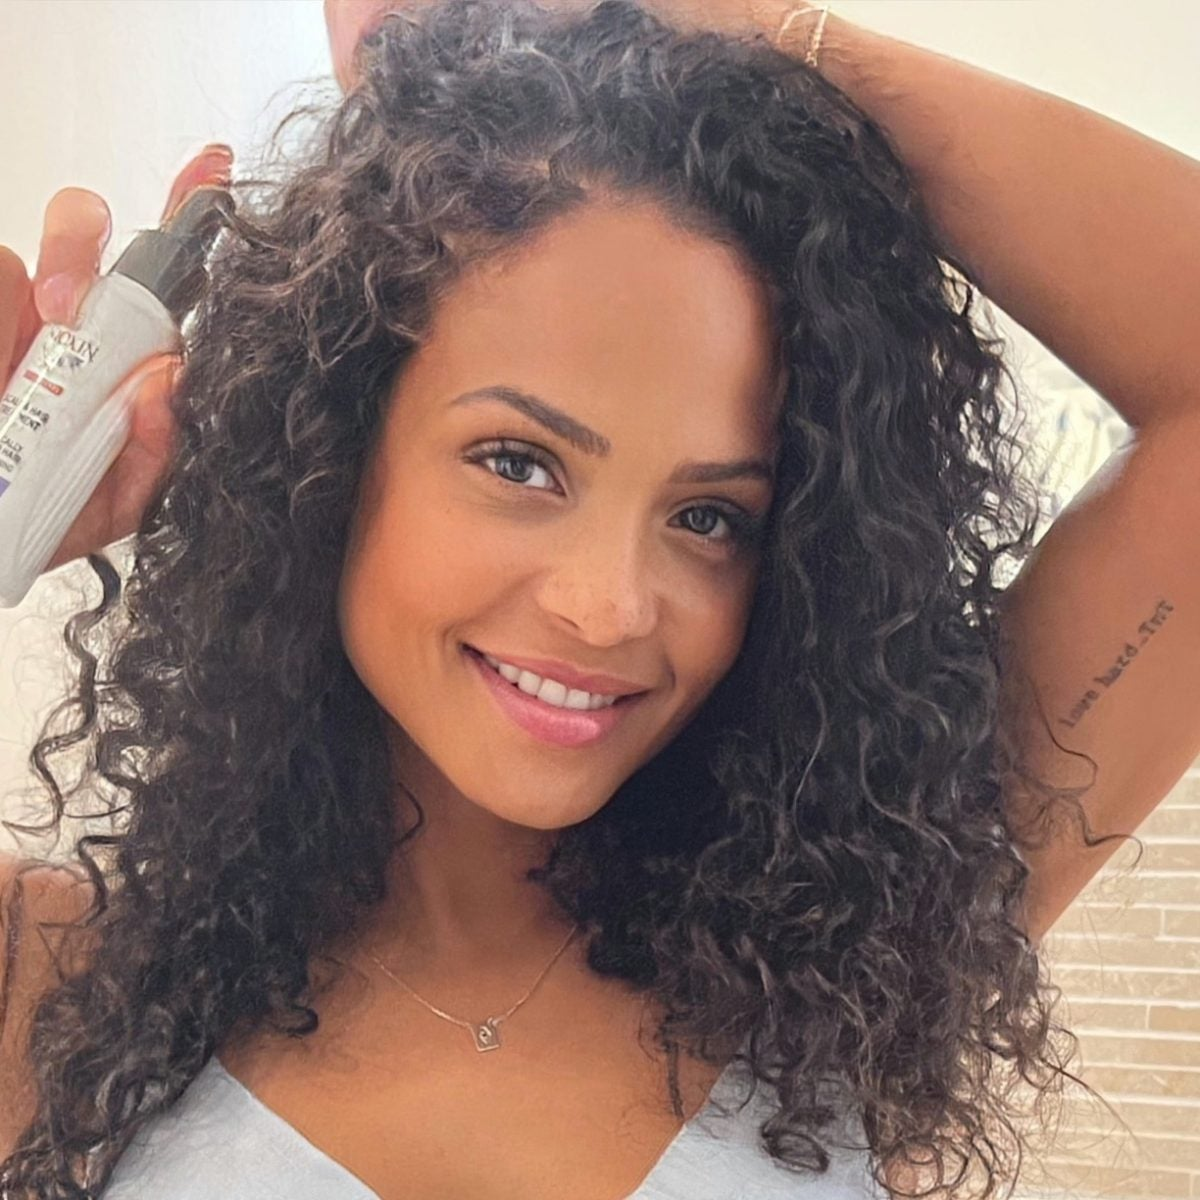 'My Hair Started Falling Out In Chunks': Christina Milian On Postpartum Hair Loss And Her Go-To Product To Combat It